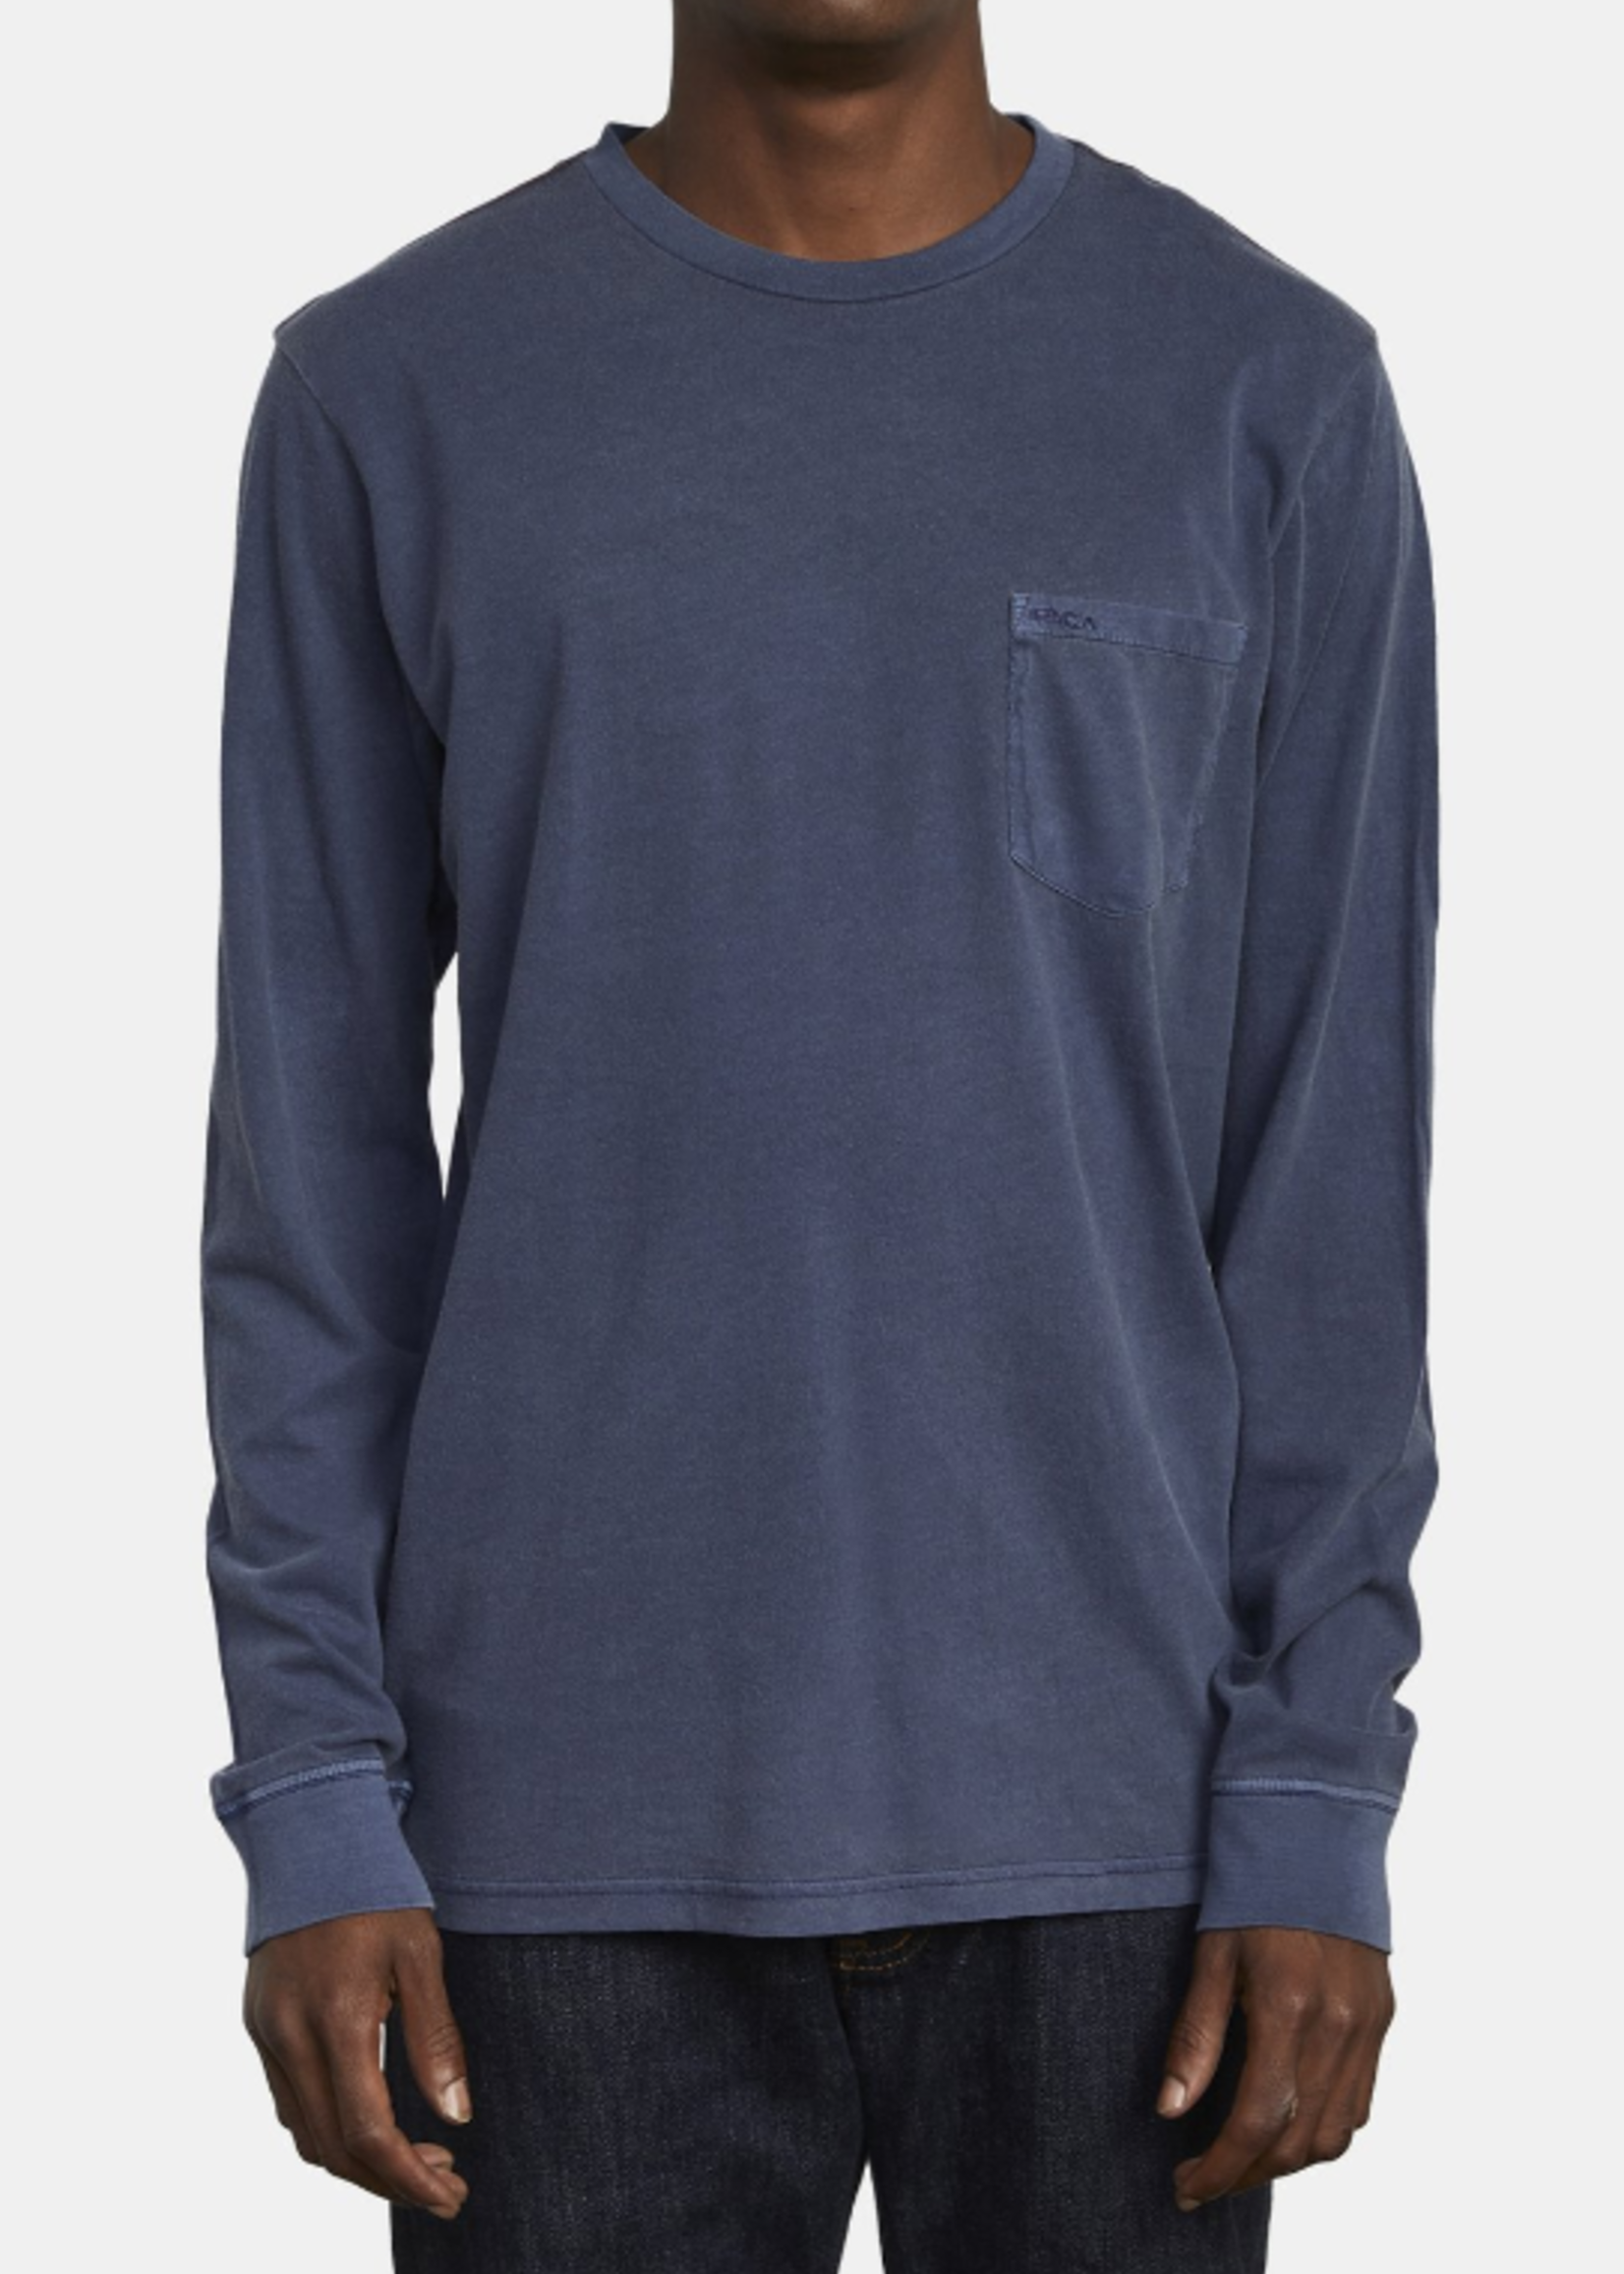 RVCA PTC Pigment Long Sleeve - Moody Blue